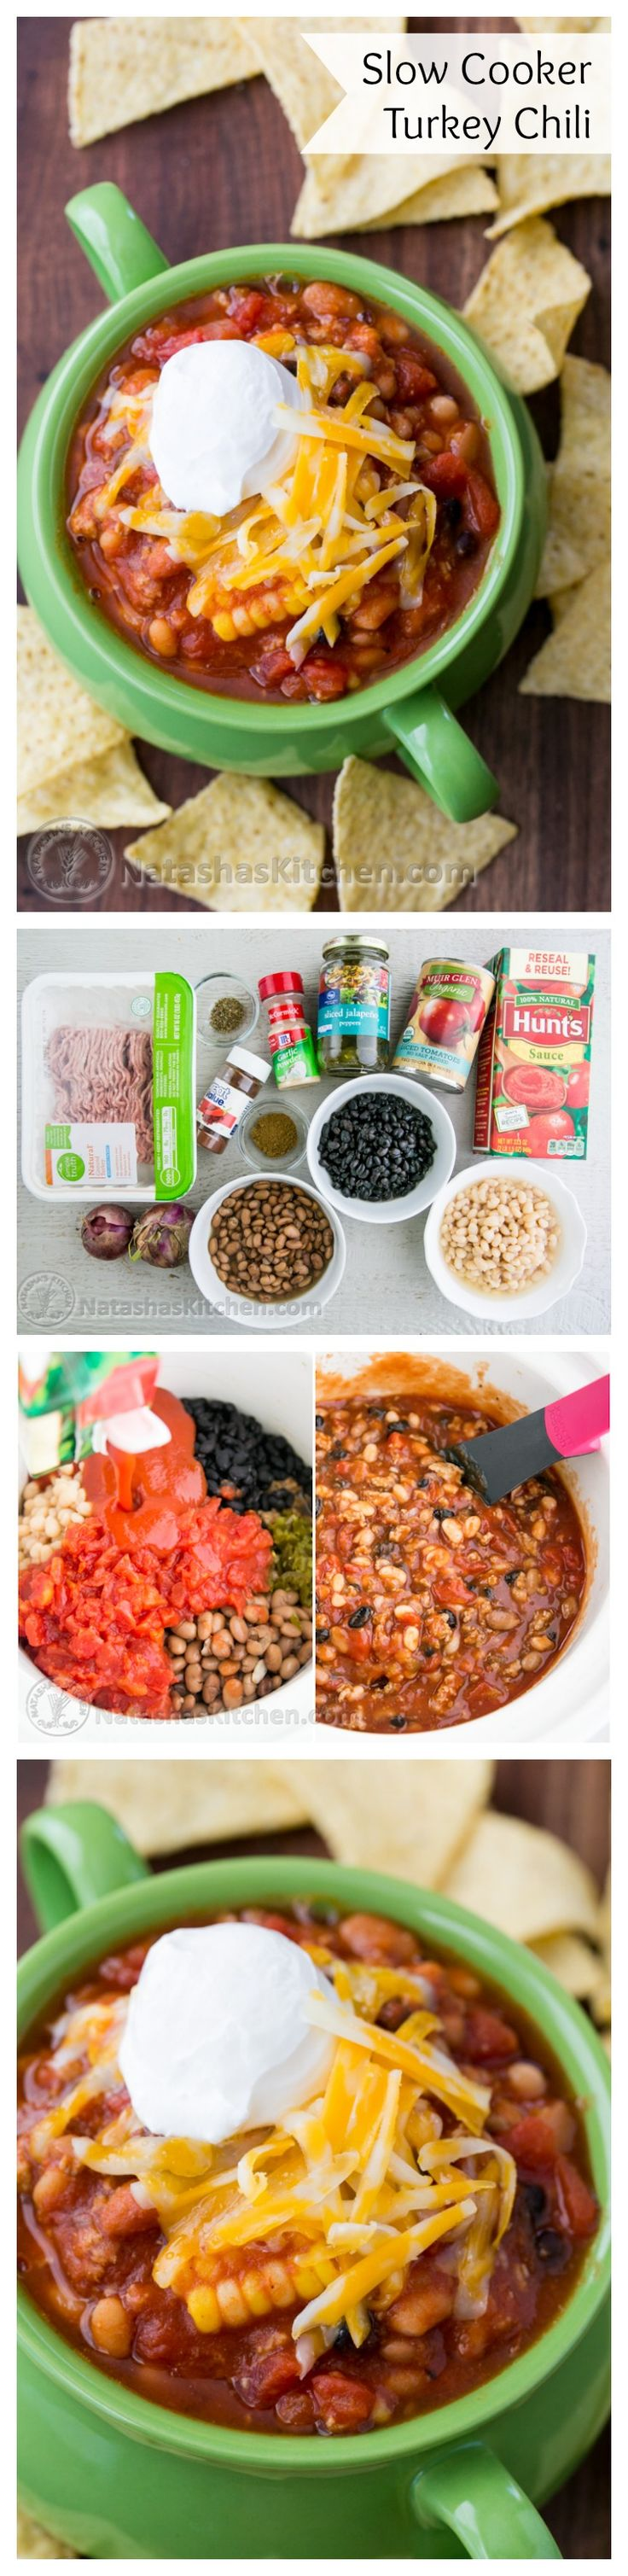 Slow Cooker Turkey Chili Re